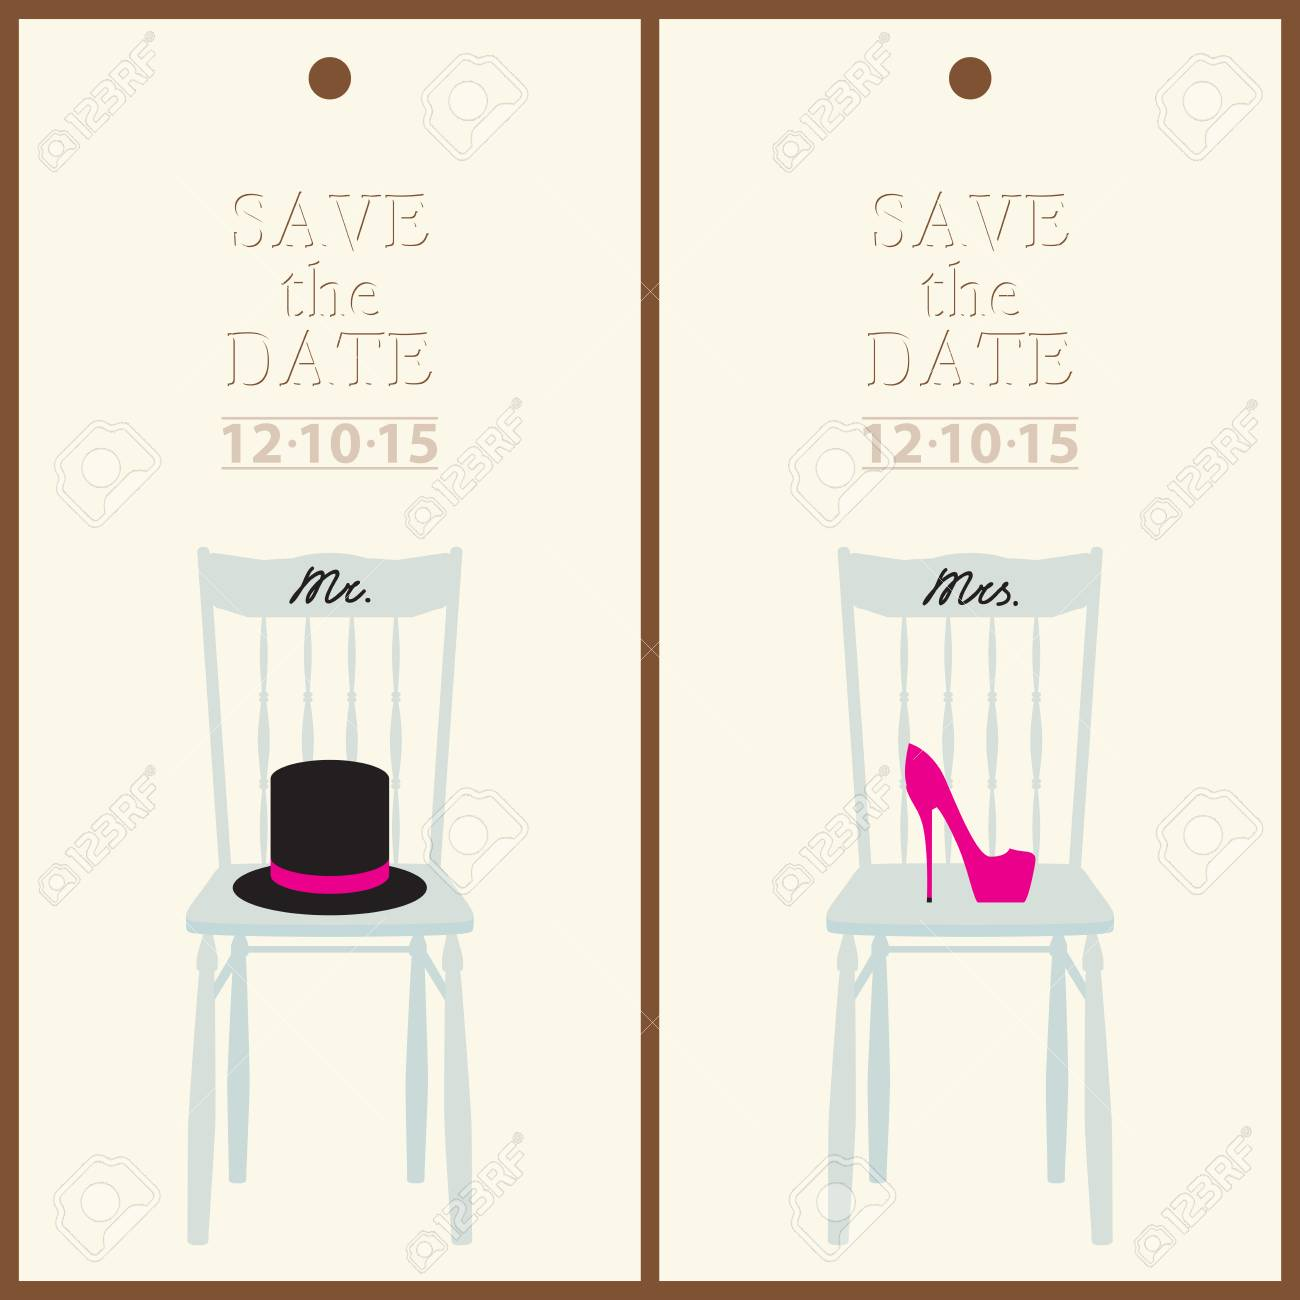 Save The Date Wedding Invitation Card Mr & Mrs Template Vector ...